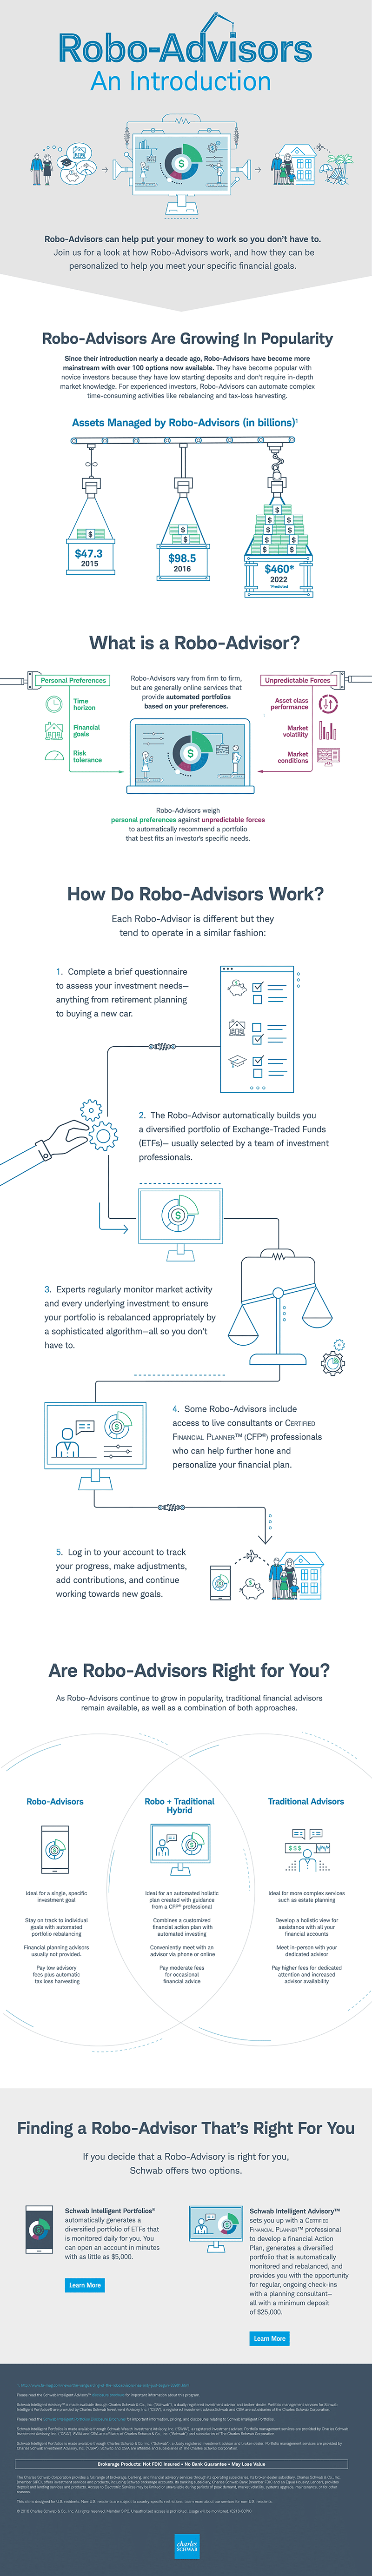 An Introduction to Robo-Advisors